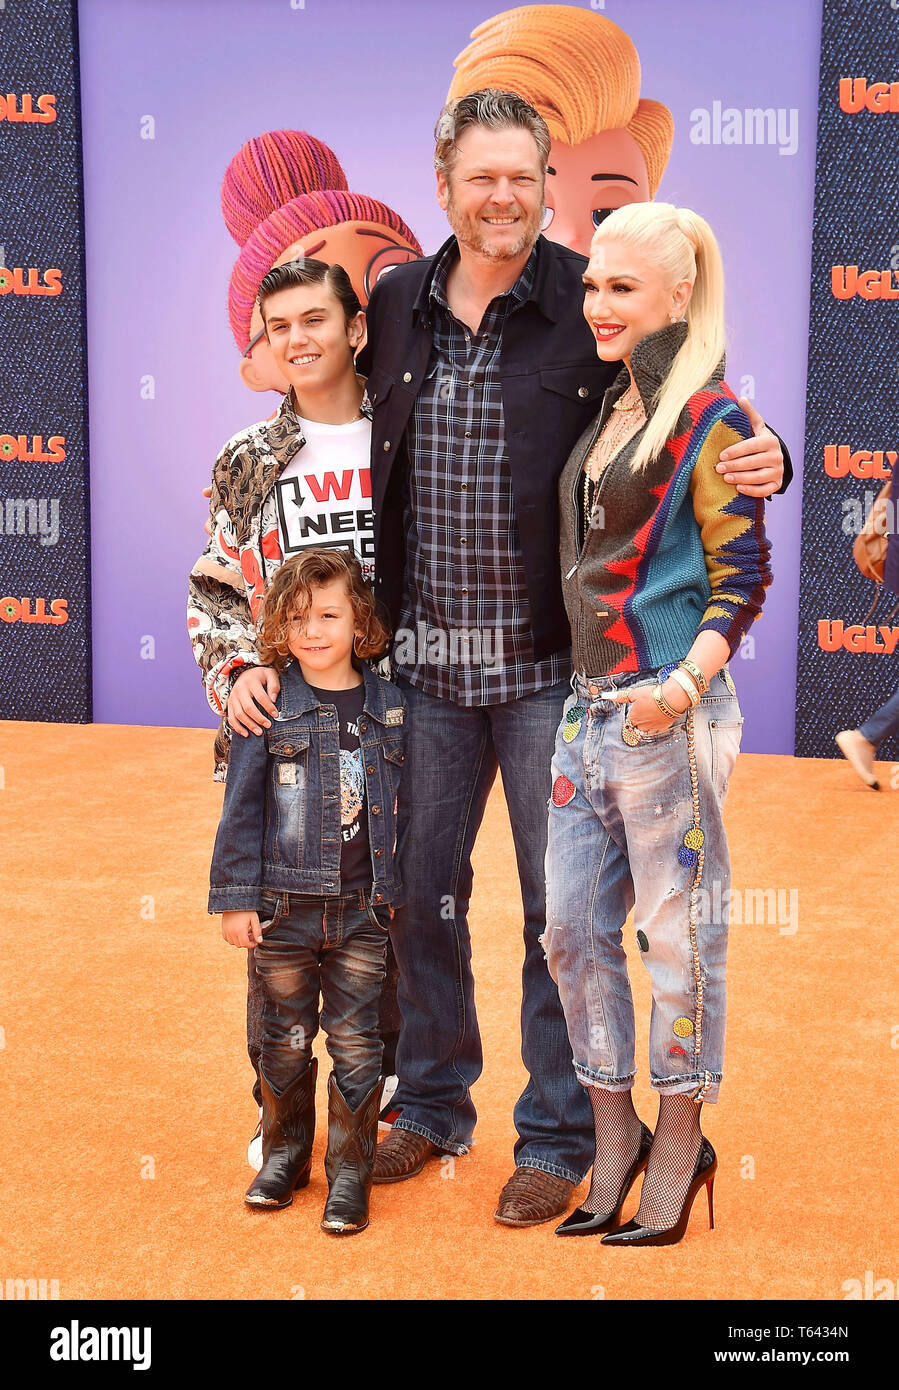 los angeles ca april 27 l r kingston rossdale apollo bowie flynn rossdale blake shelton and gwen stefani arrive at the stx films world premiere of uglydolls at regal cinemas l a live https www alamy com los angeles ca april 27 l r kingston rossdale apollo bowie flynn rossdale blake shelton and gwen stefani arrive at the stx films world premiere of uglydolls at regal cinemas la live on april 27 2019 in los angeles california image244723381 html